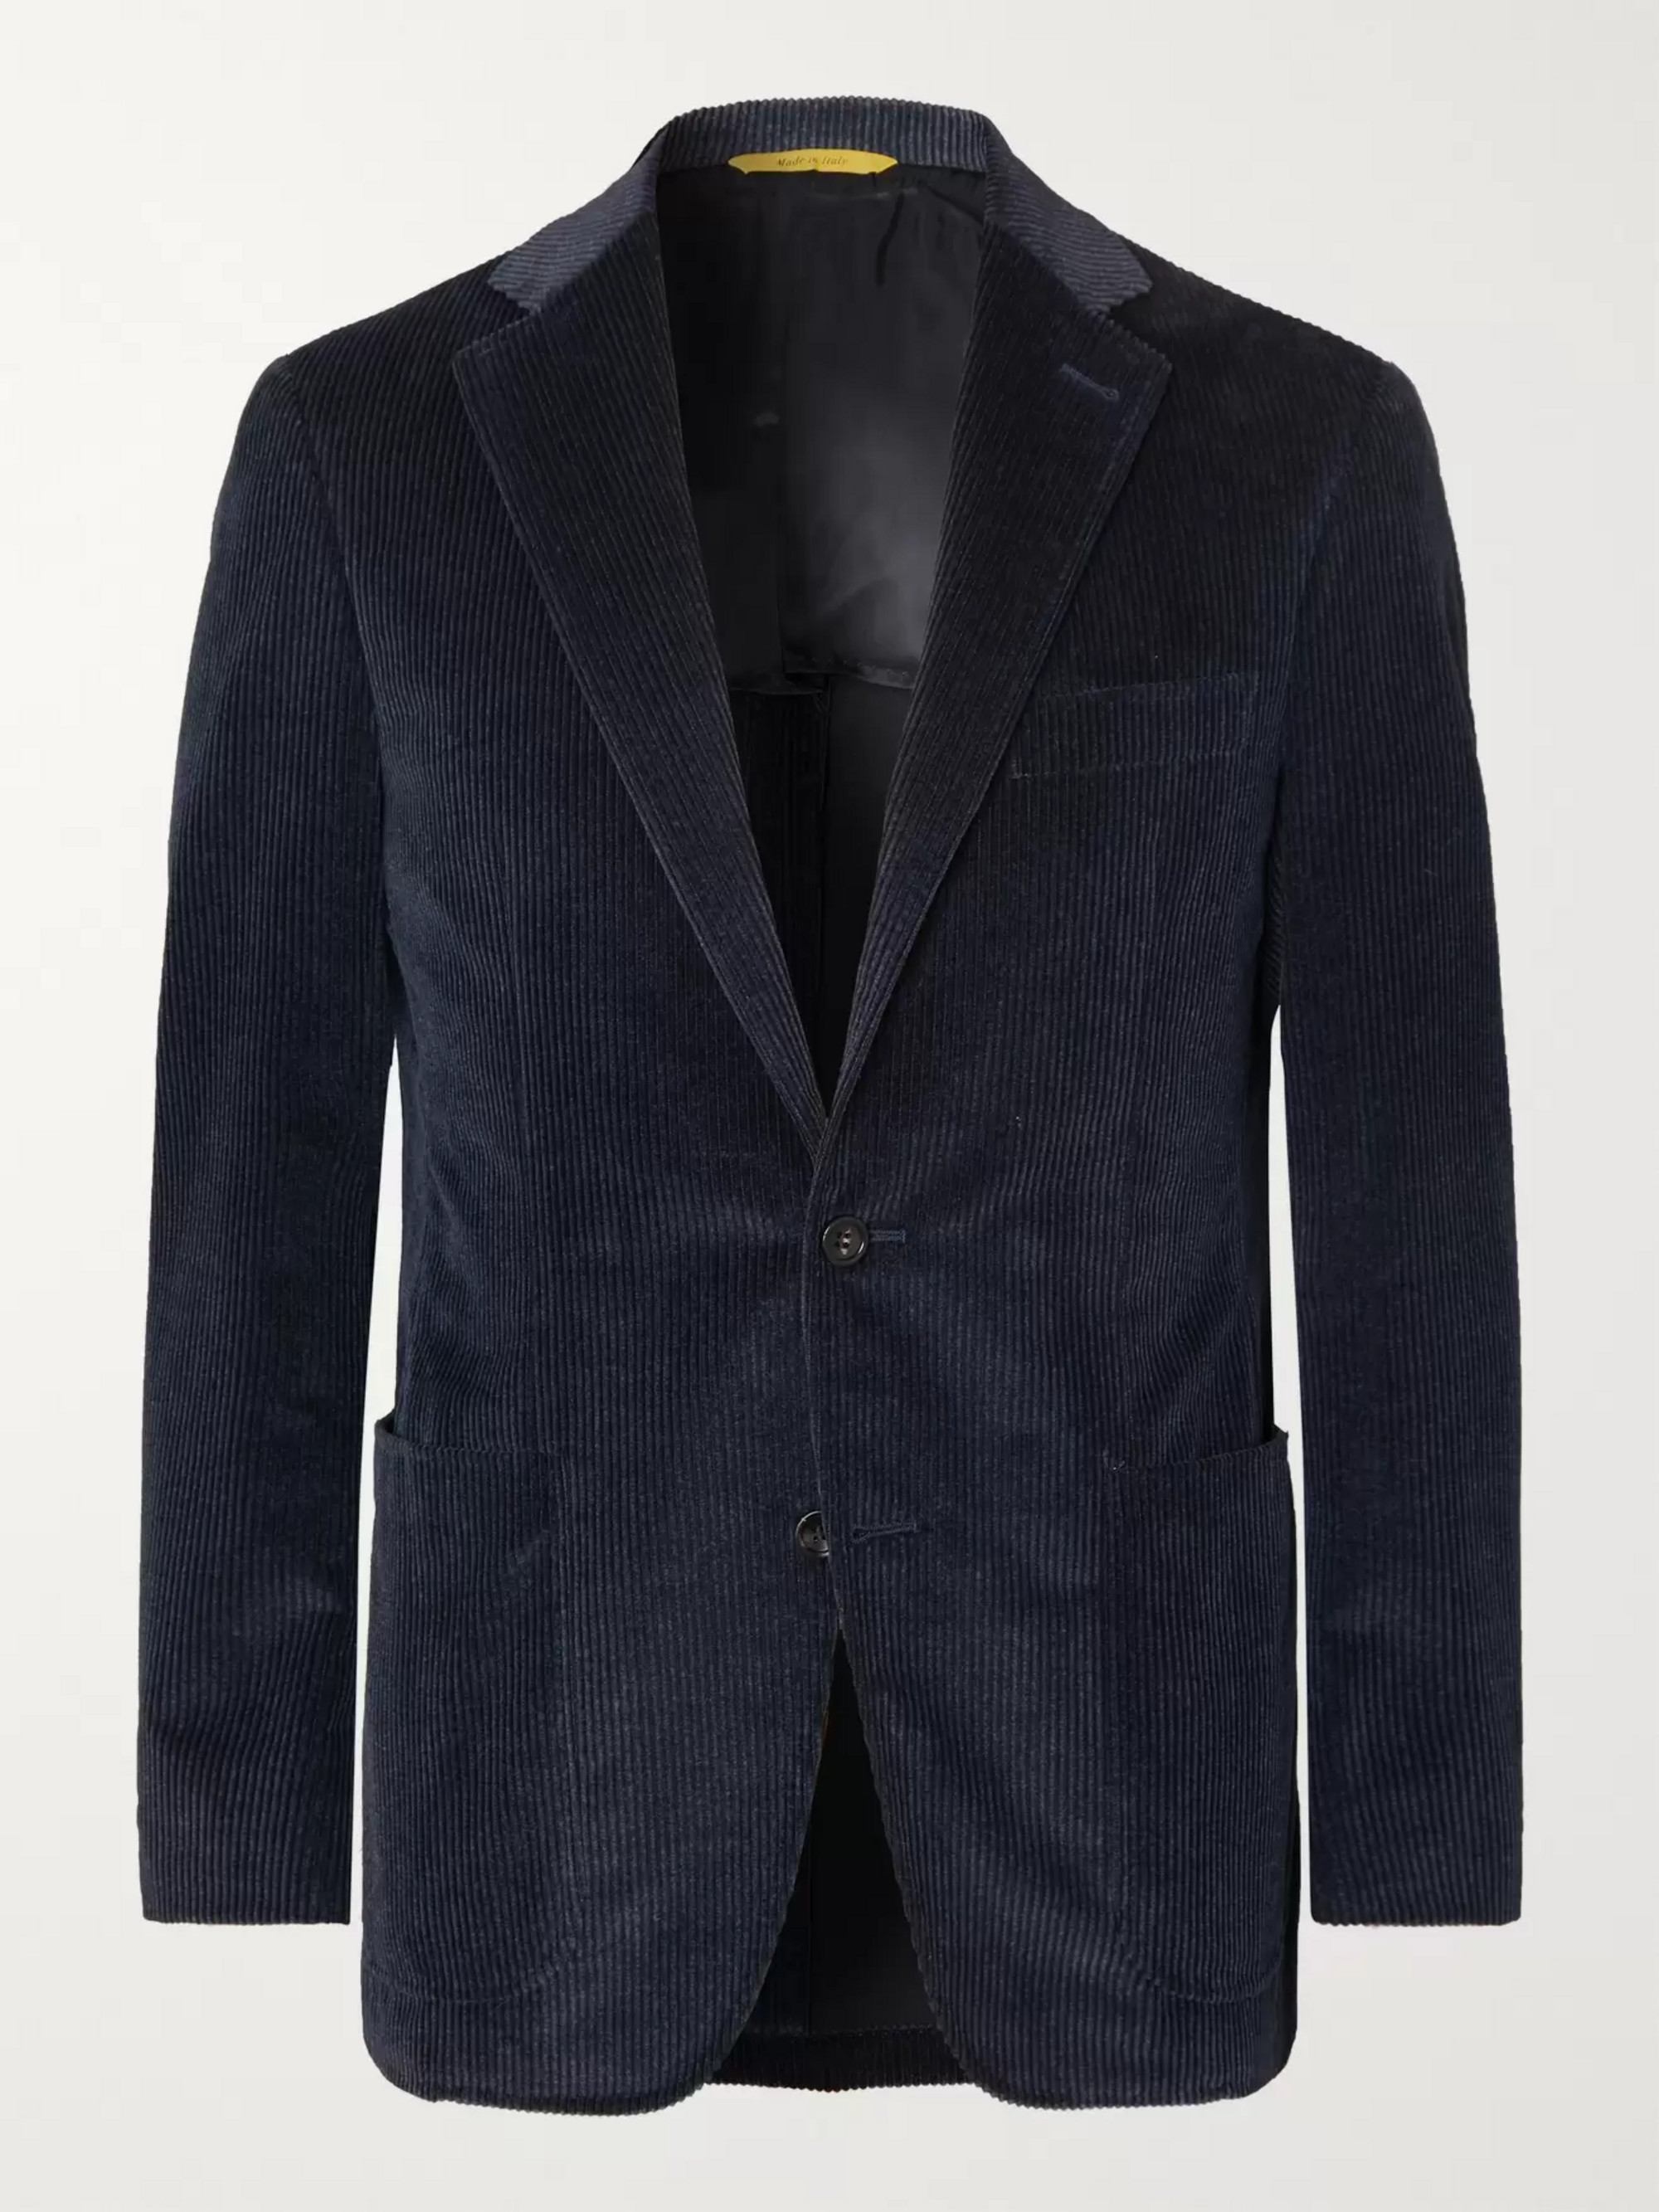 Canali Navy Kei Slim-Fit Cotton-Blend Corduroy Blazer